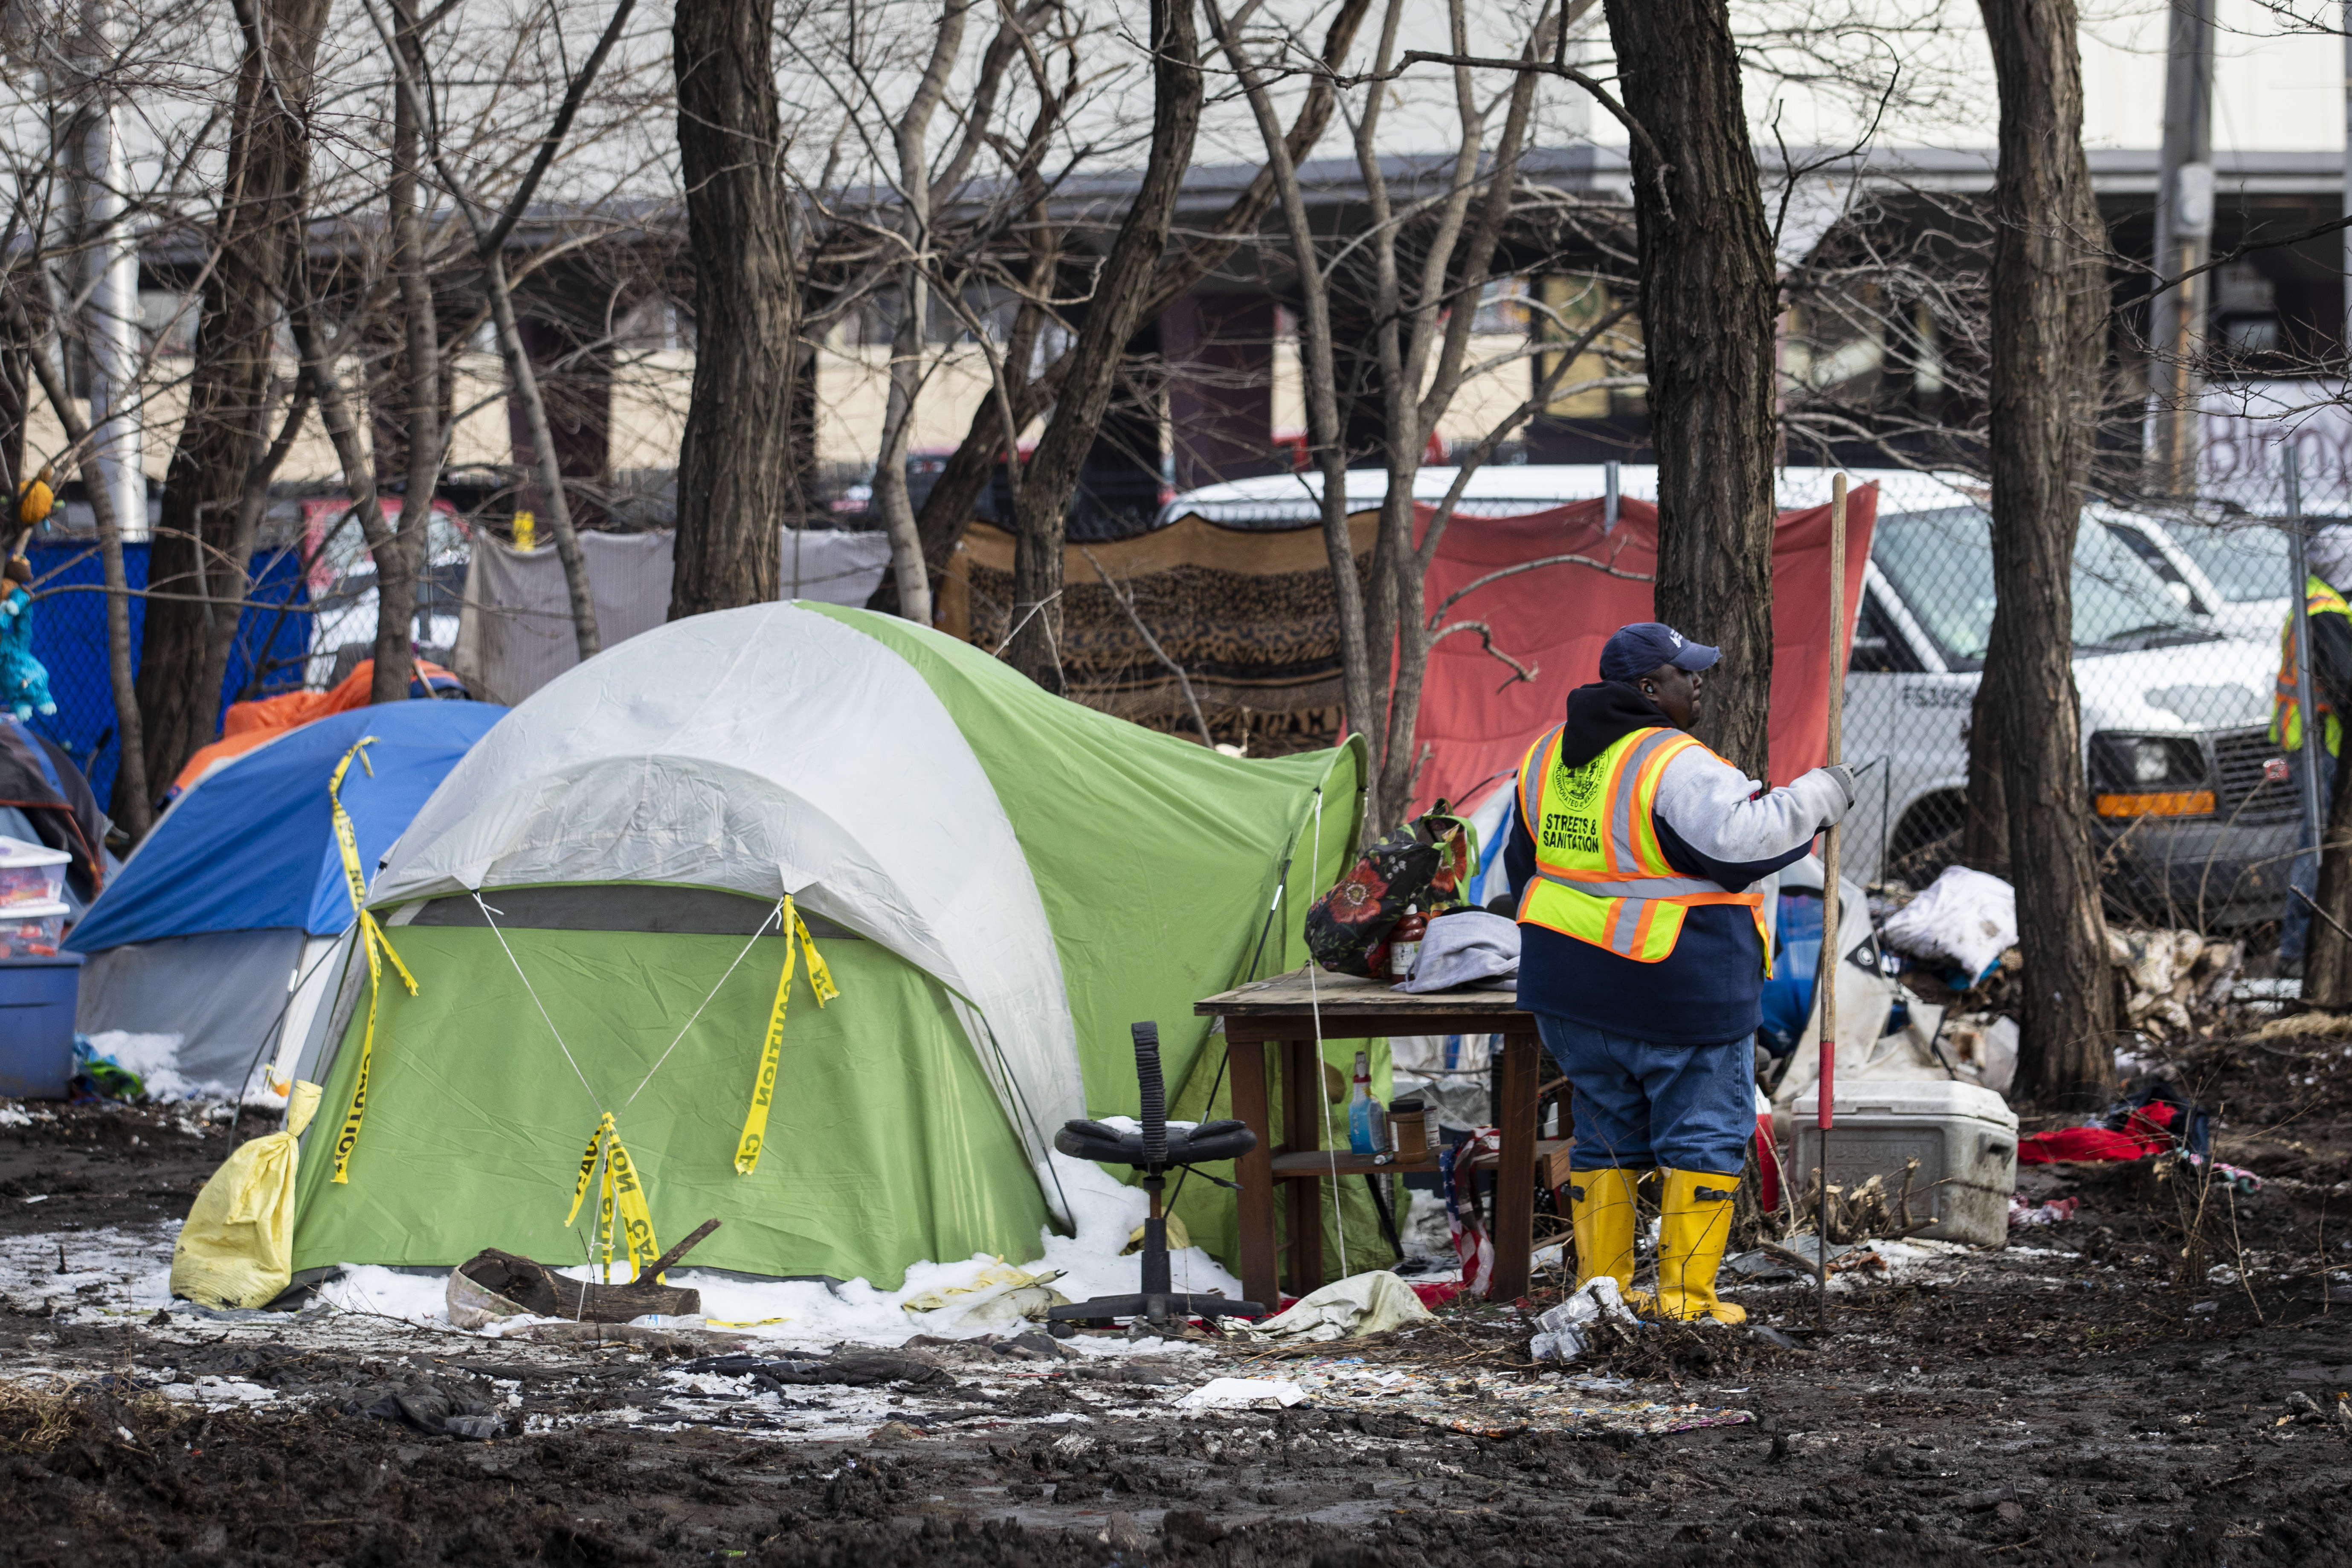 Workers from the city's Department of Streets and Sanitation clear out a homeless encampment near South Desplaines Street and West Roosevelt Road.